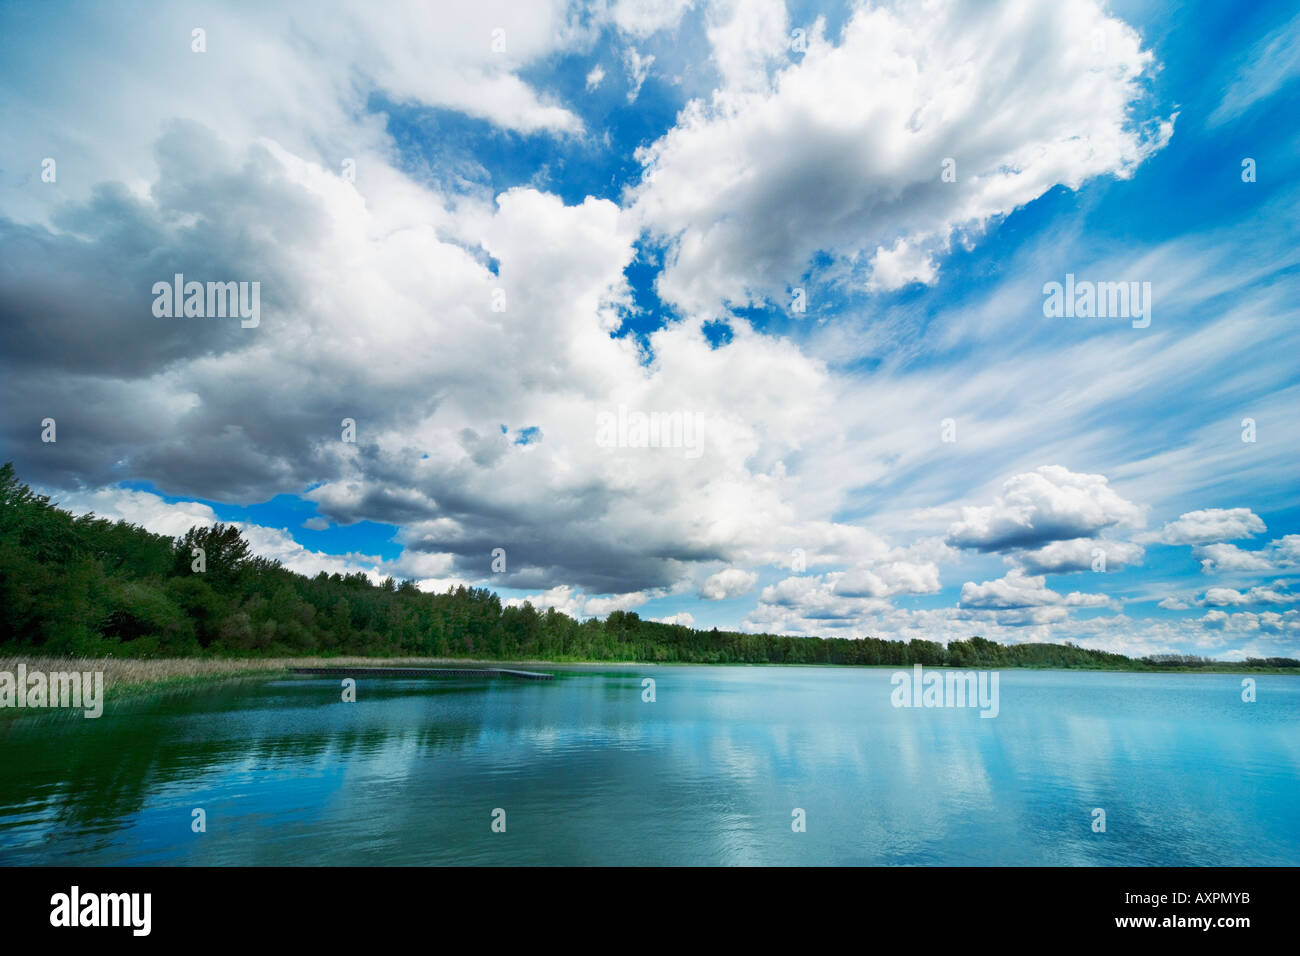 Cloud formation over body of water - Stock Image